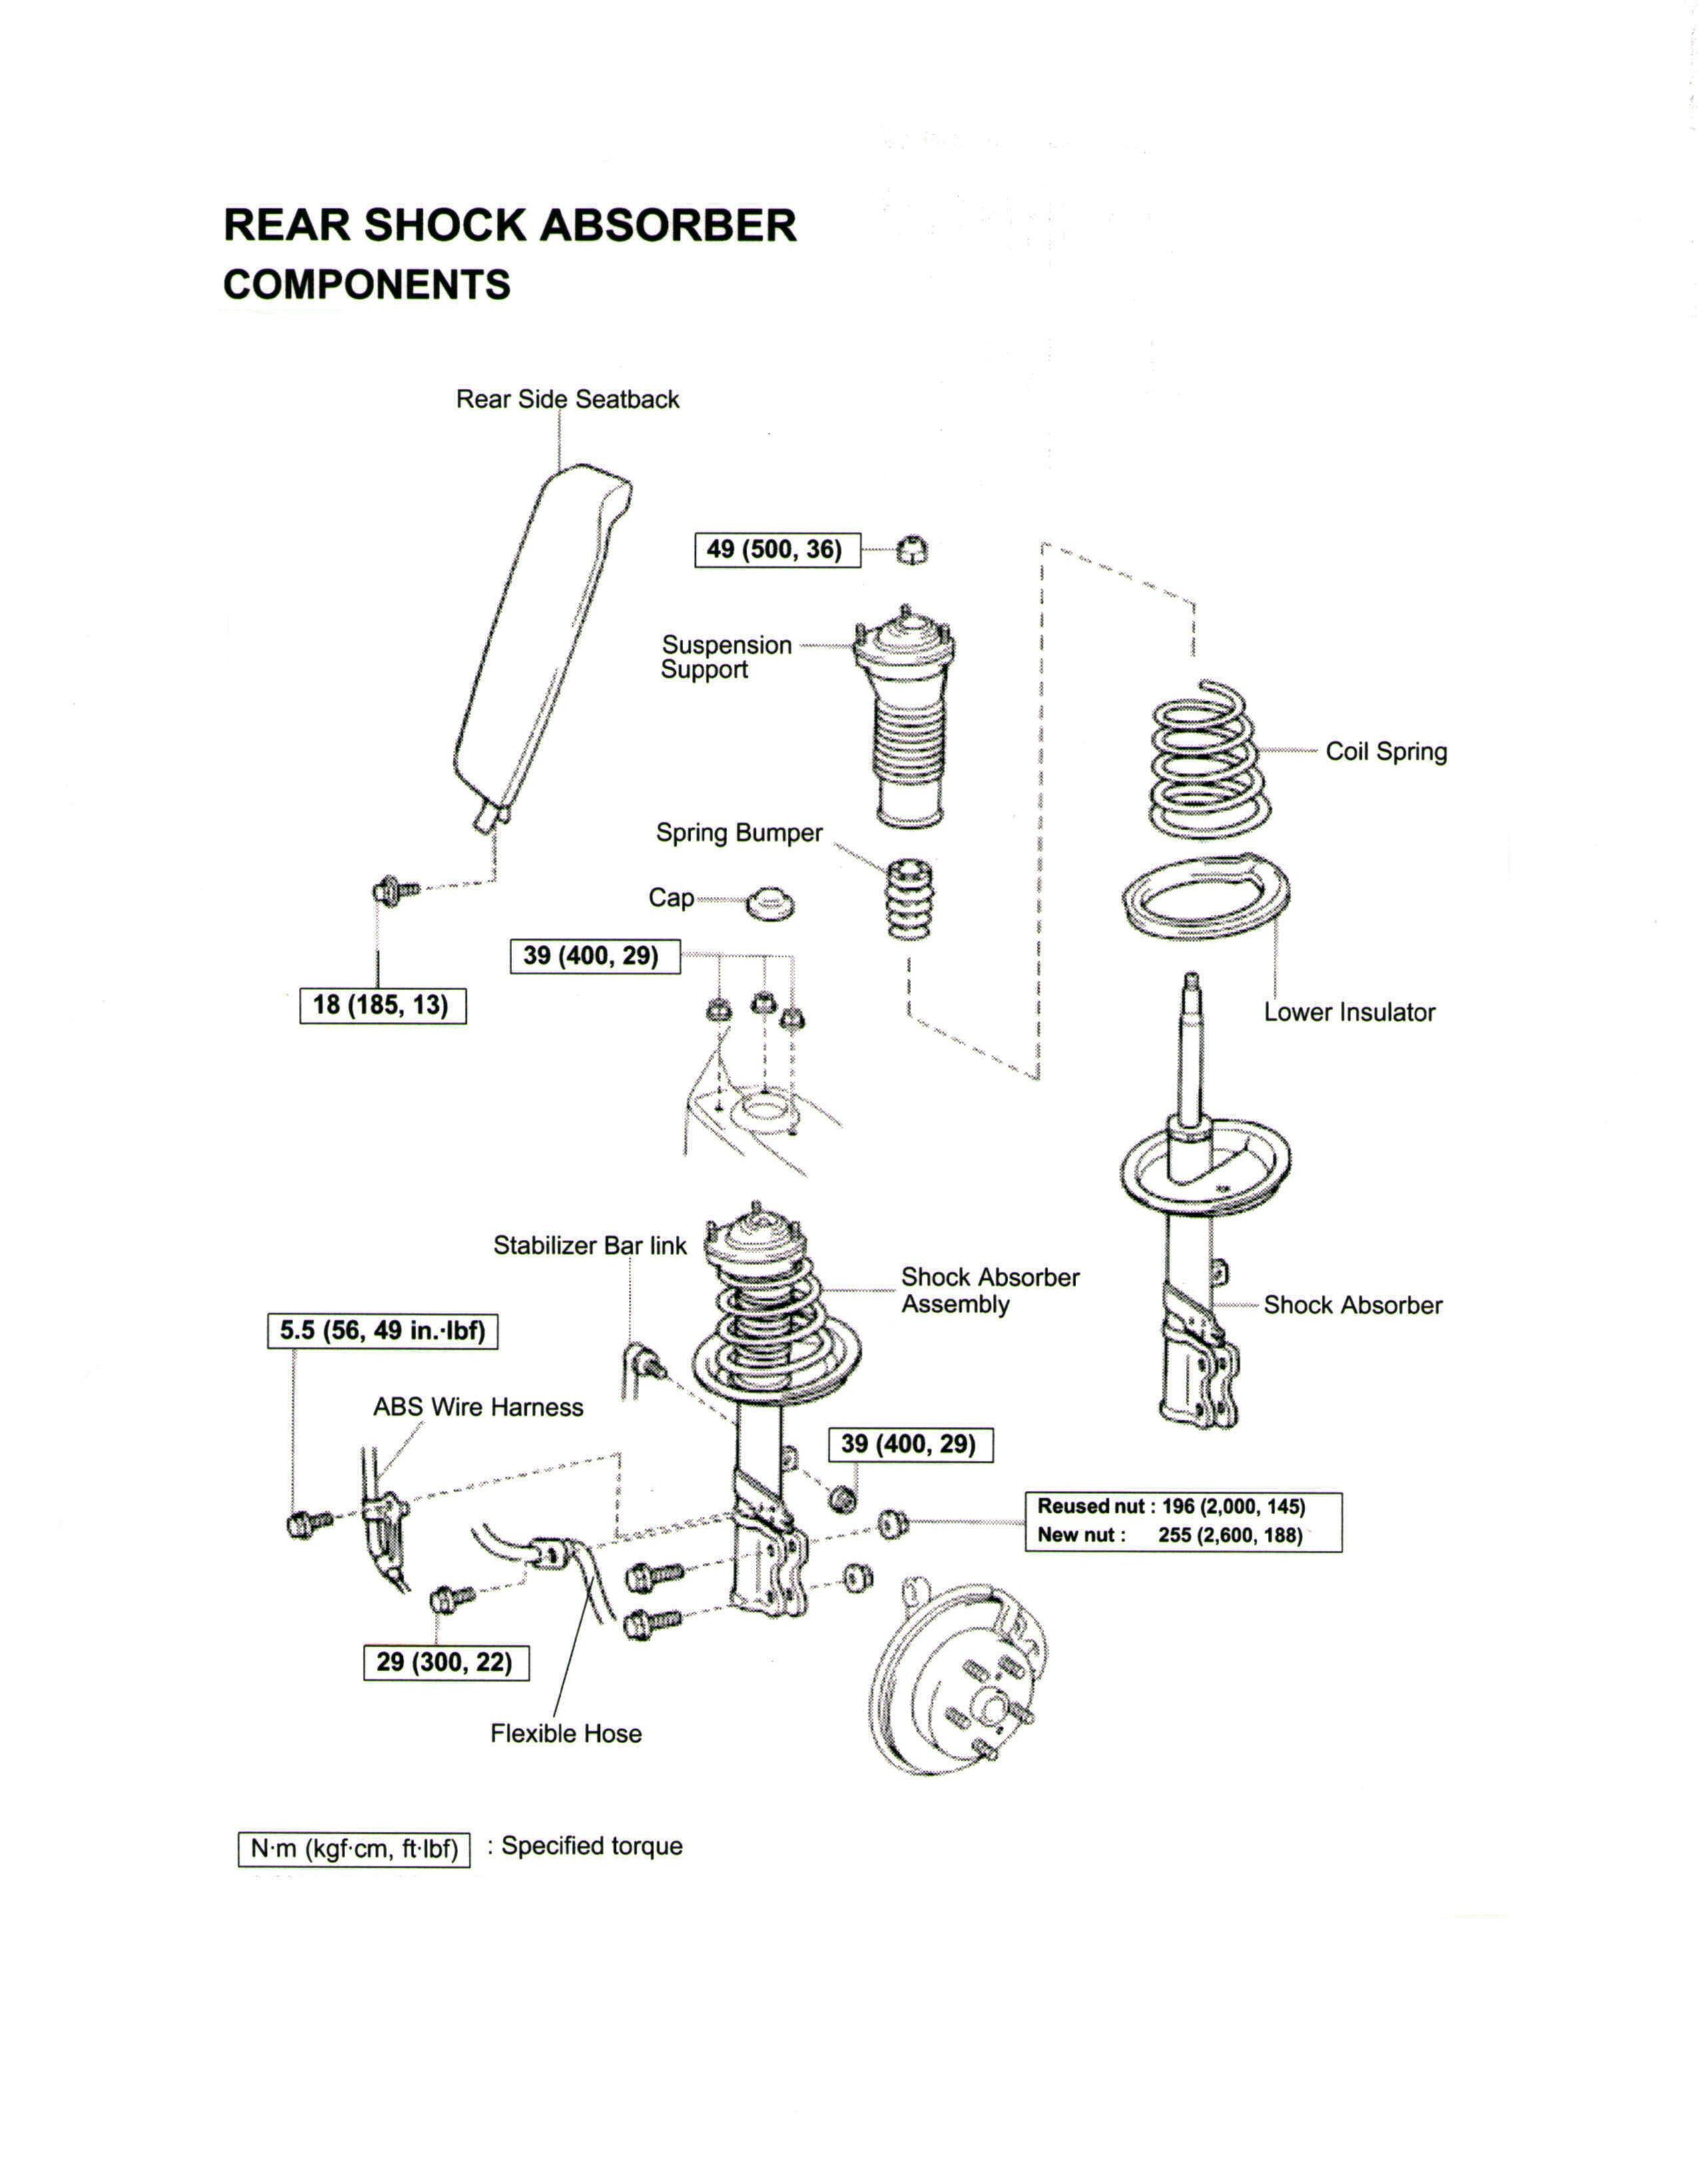 Toyota Camry 2007 Engine Diagram How To Change Alternator I2000 Camery 2 2l Corolla Vvt I Years 2000 Related Post